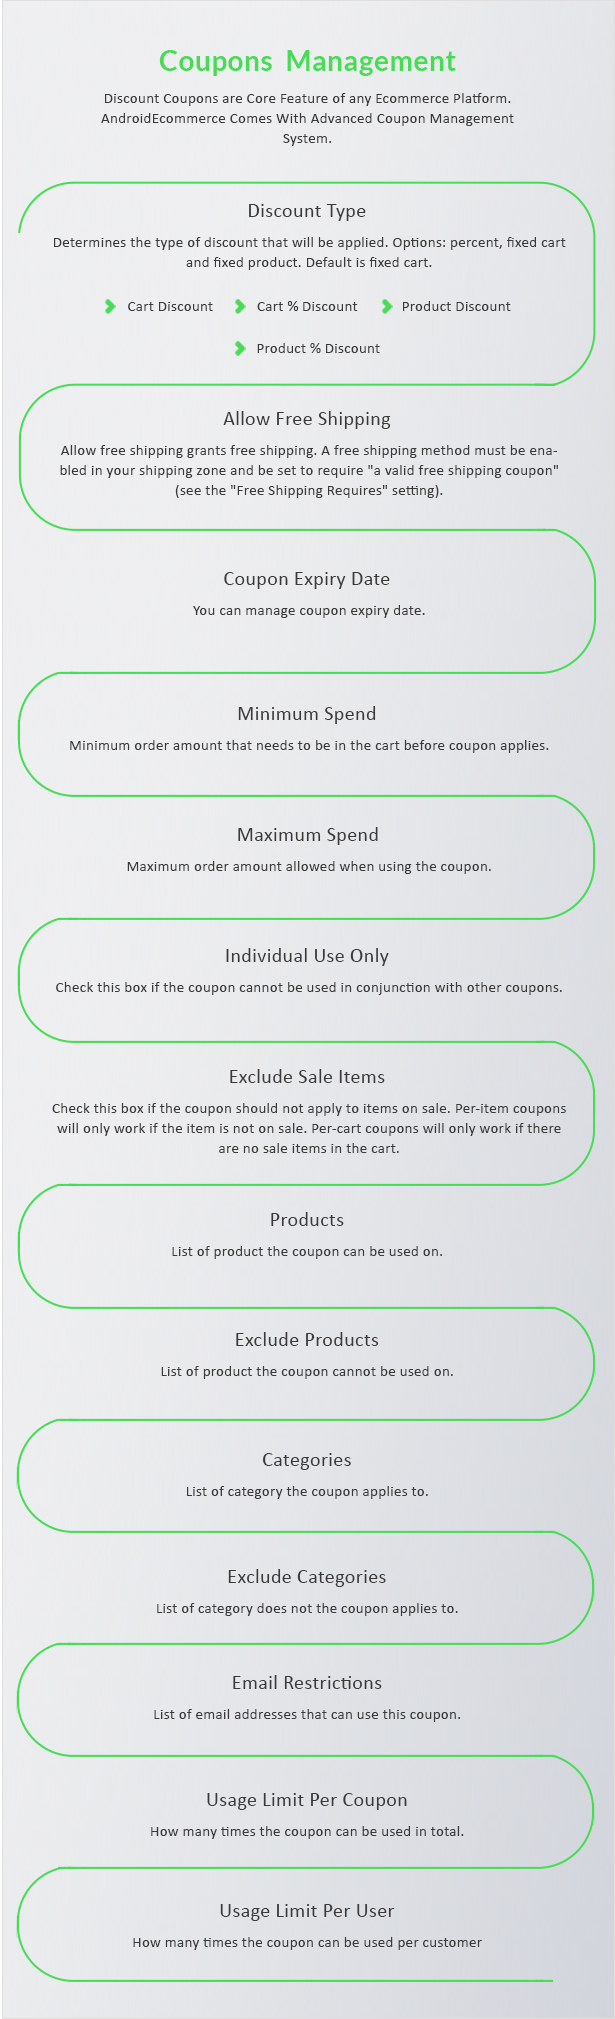 Android Ecommerce - Universal Android Ecommerce / Store Full Mobile App with Laravel CMS - 25